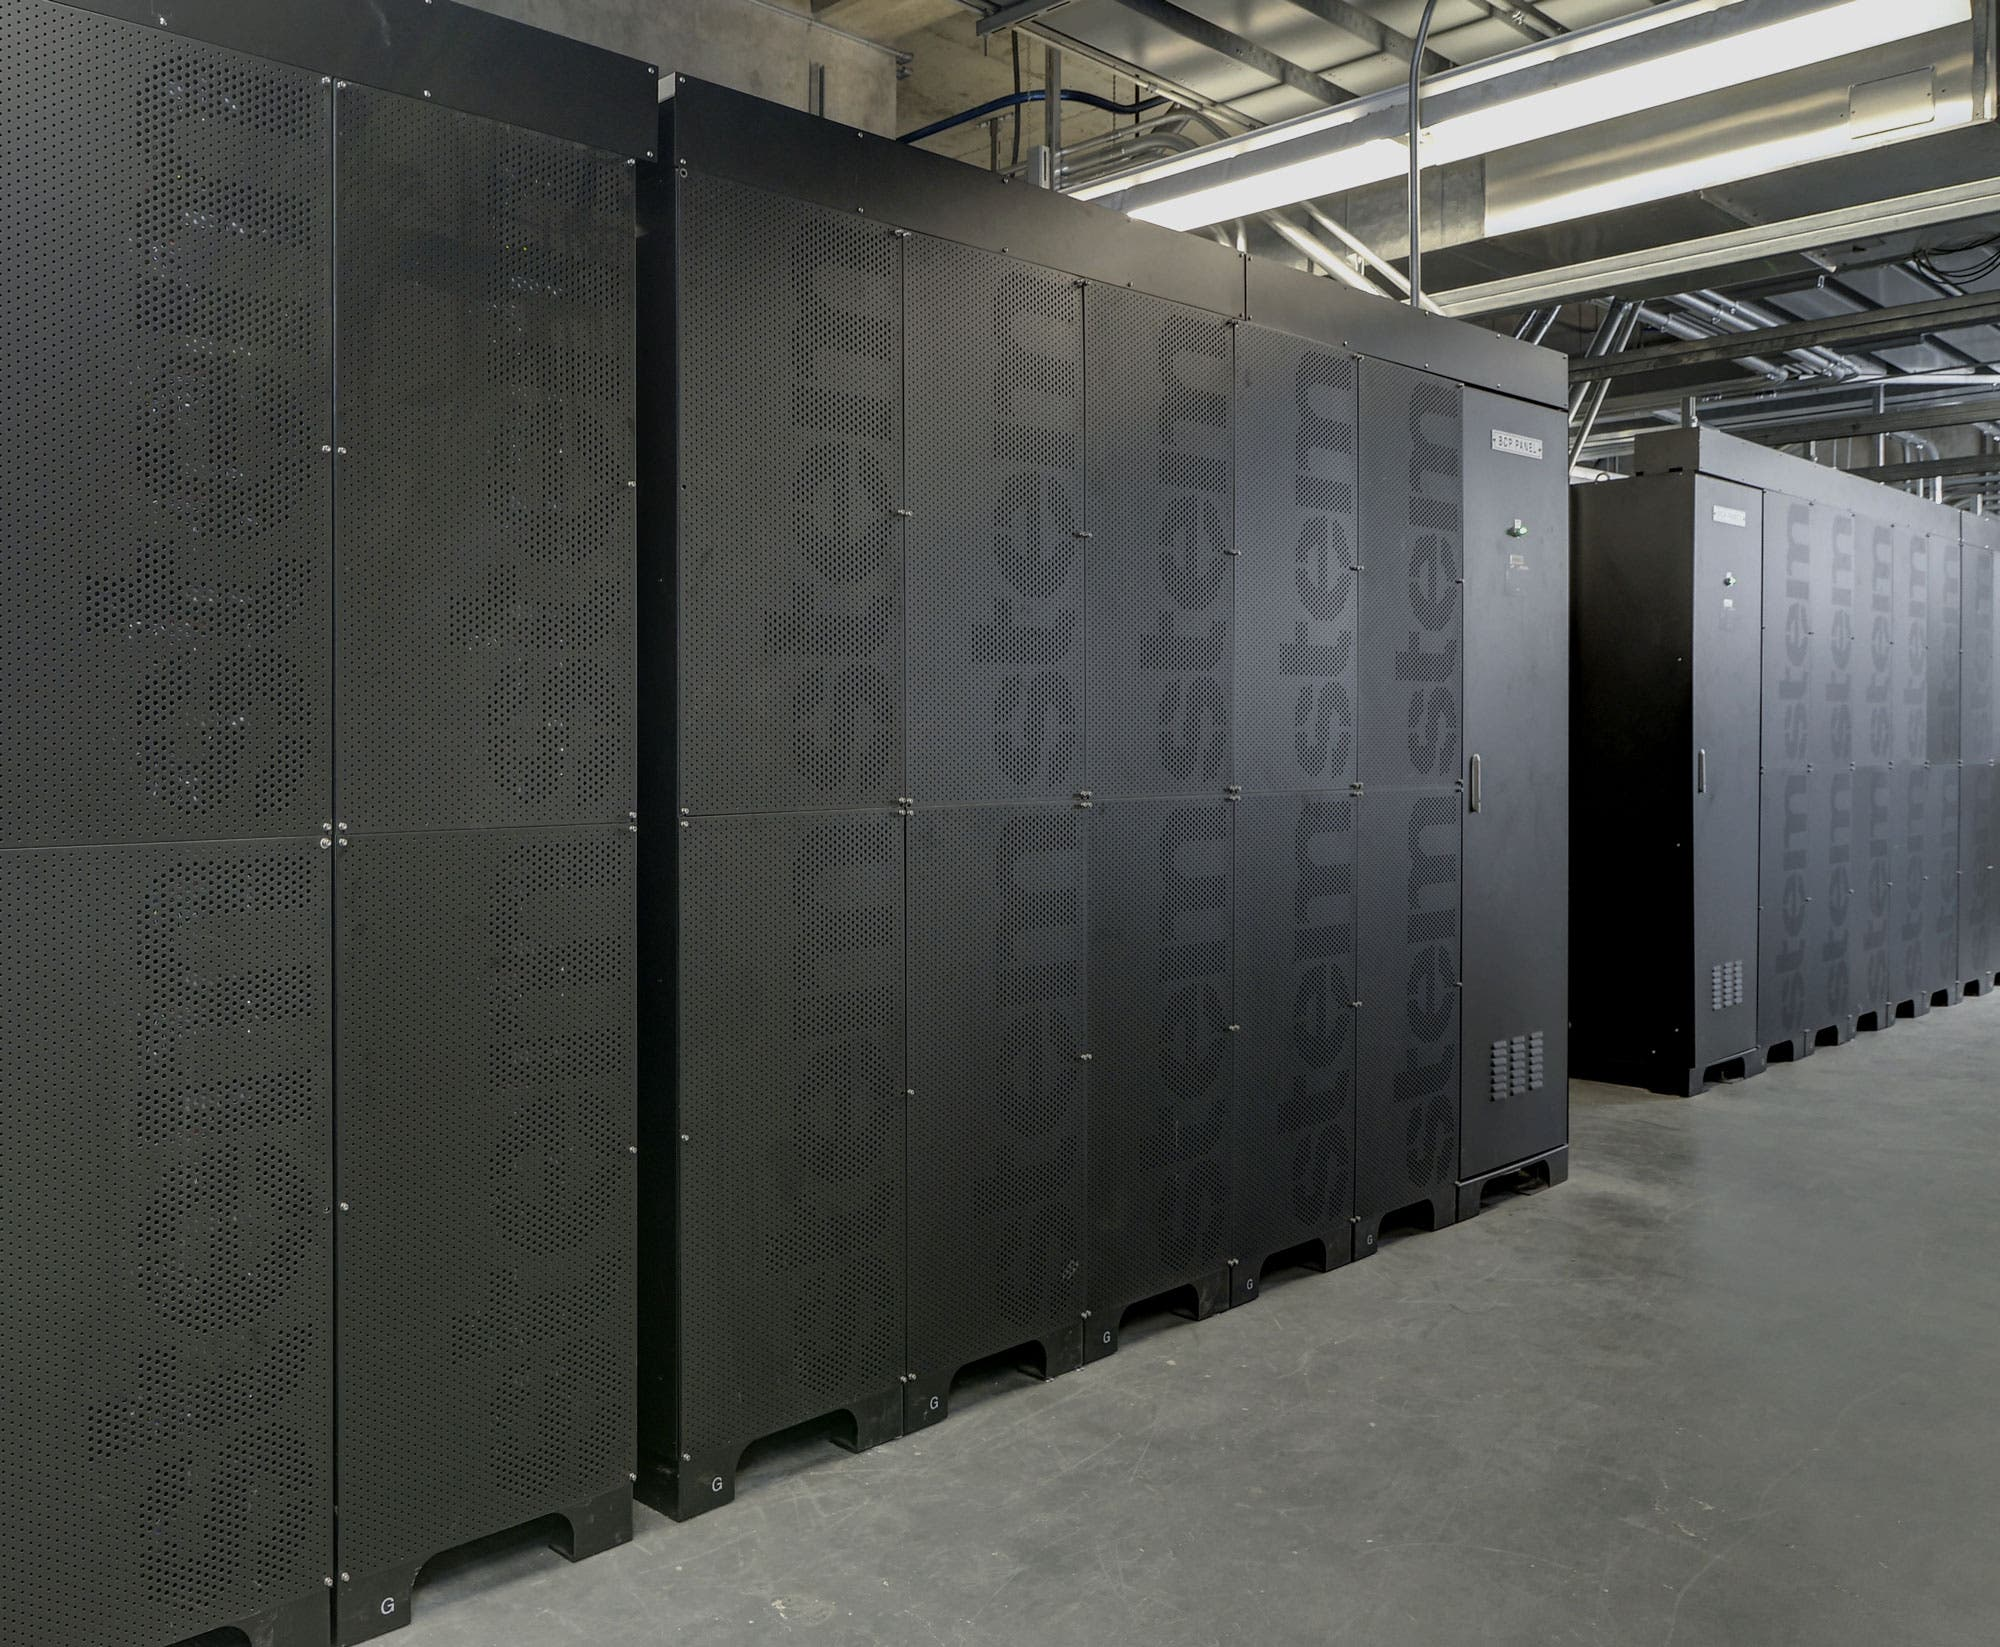 cleantechnica.com - Kyle Field - Stem Is Moving Beyond Energy Storage Into Solar+Storage Solutions